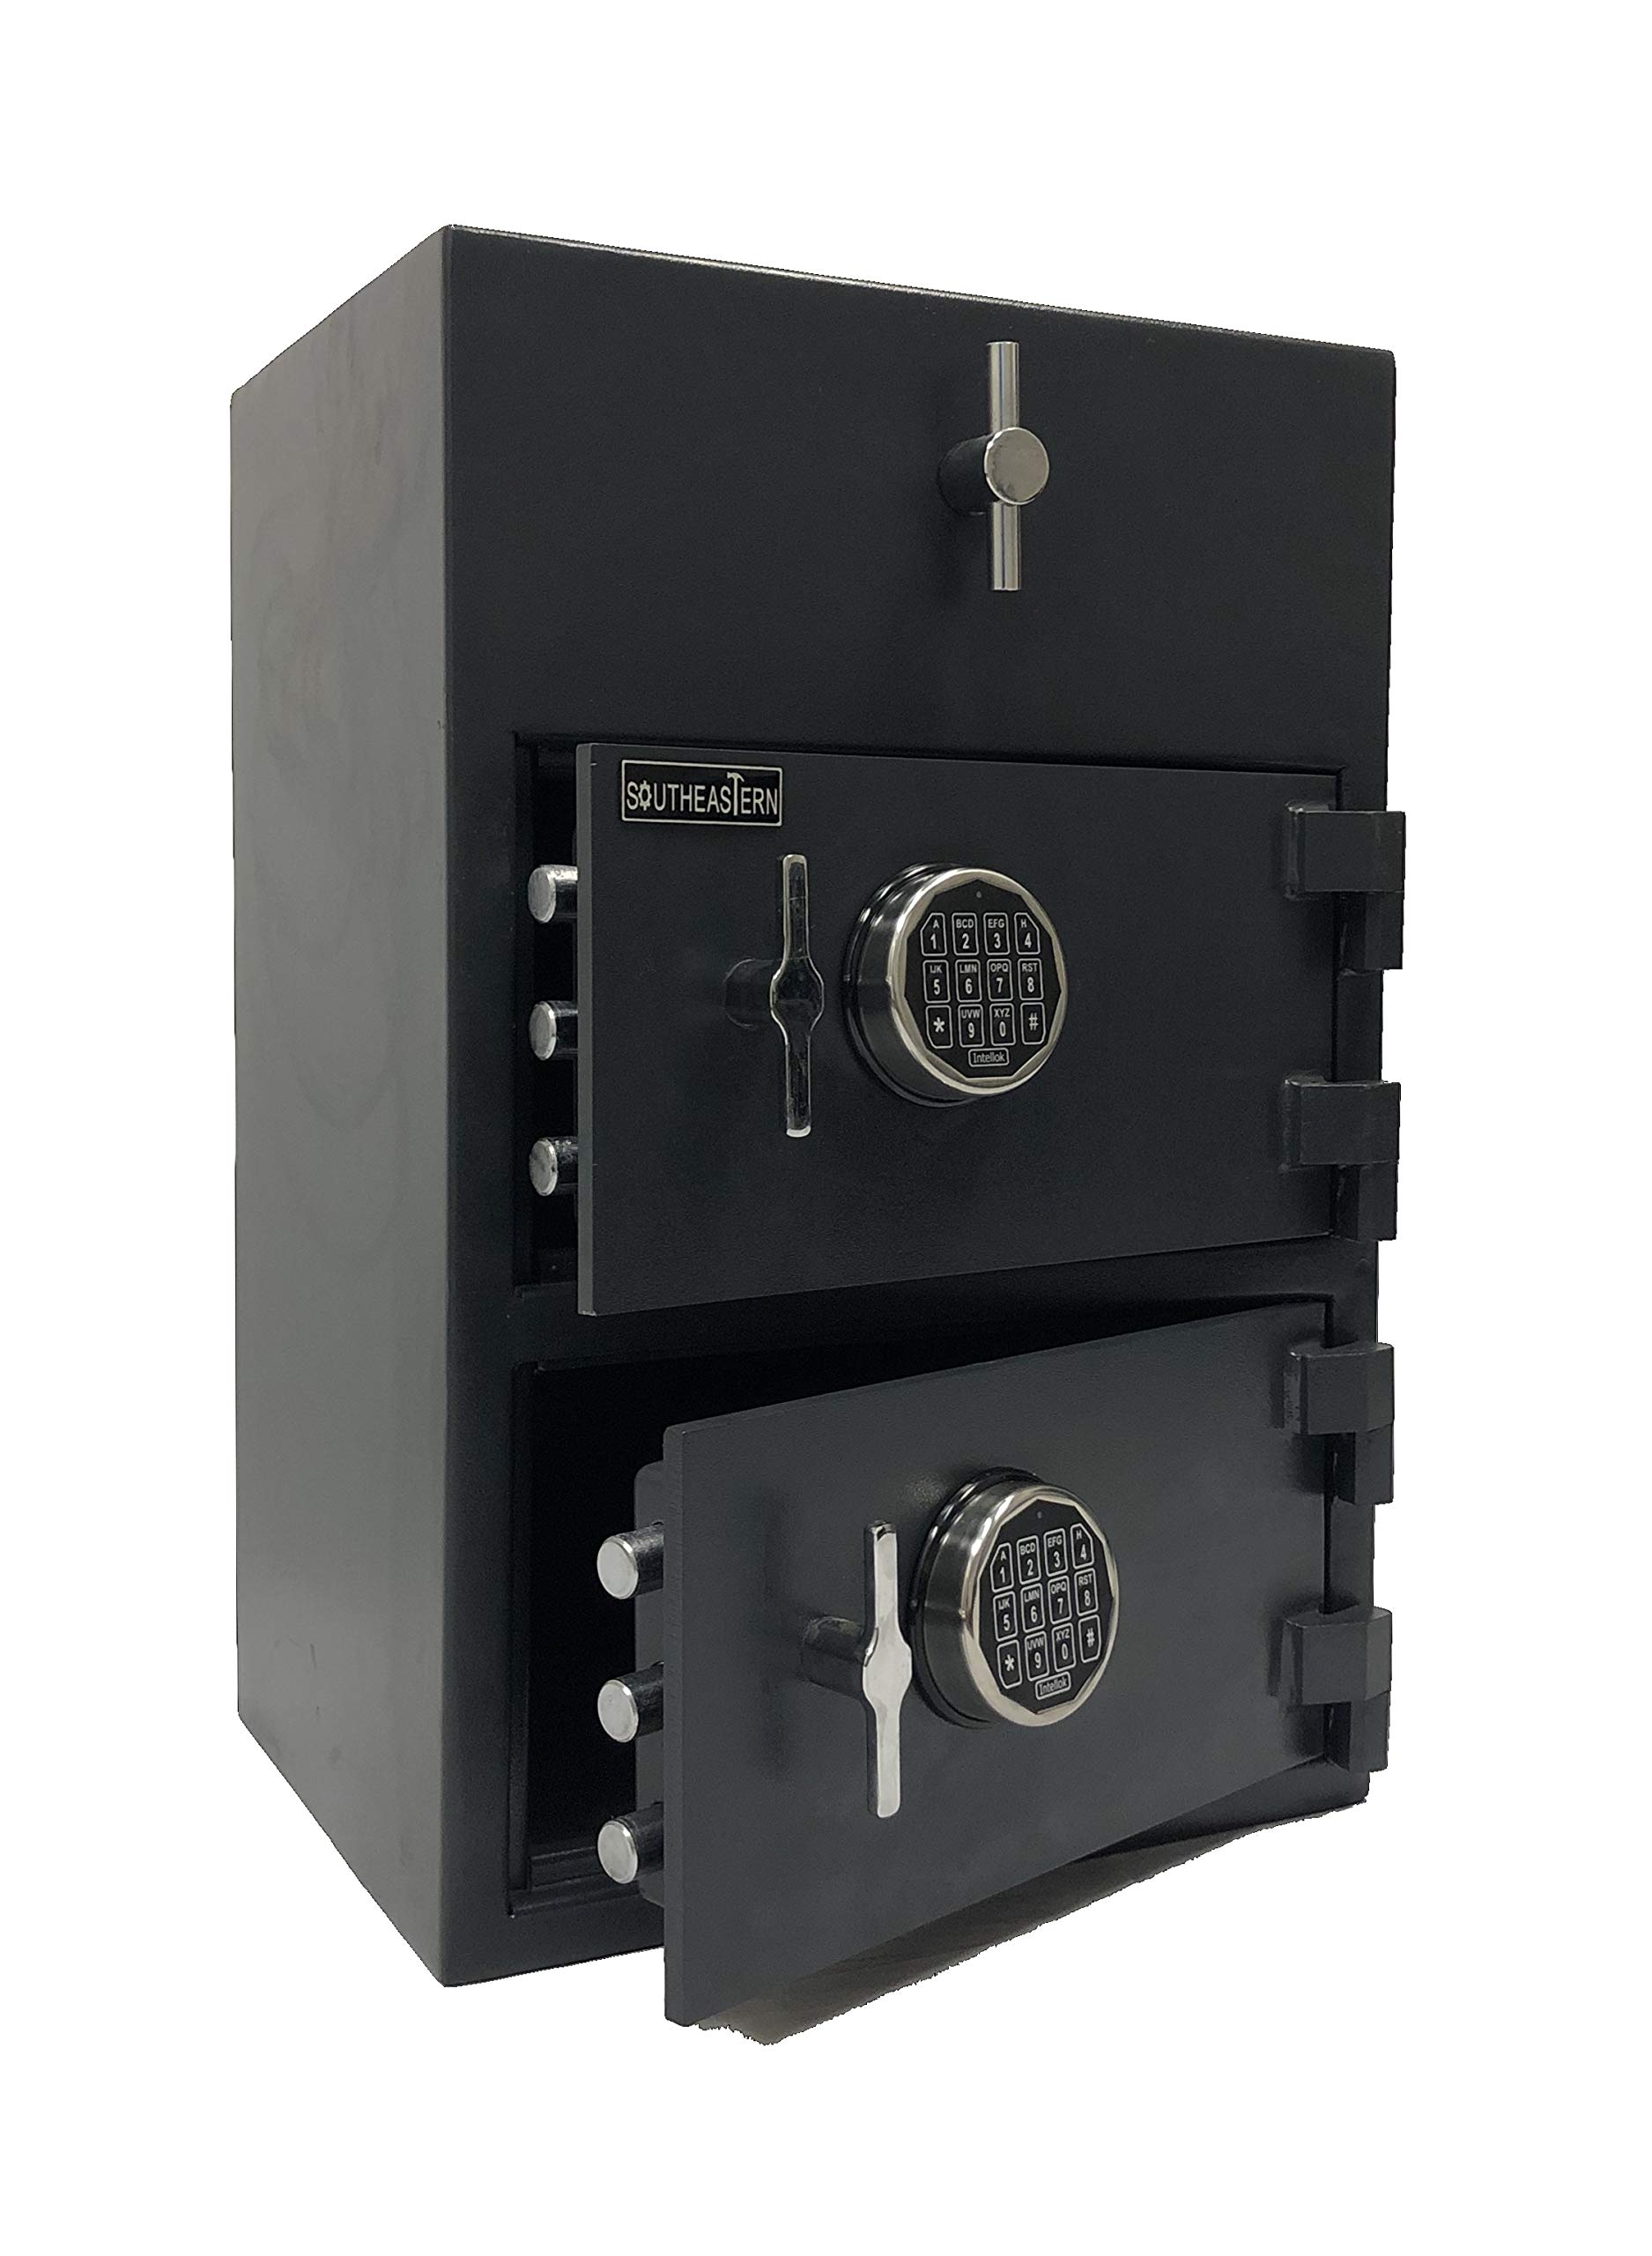 SOUTHEASTERN Double Door Top Loading Drop Depository Safe with Quick Electronic Combination Lock by Southeastern